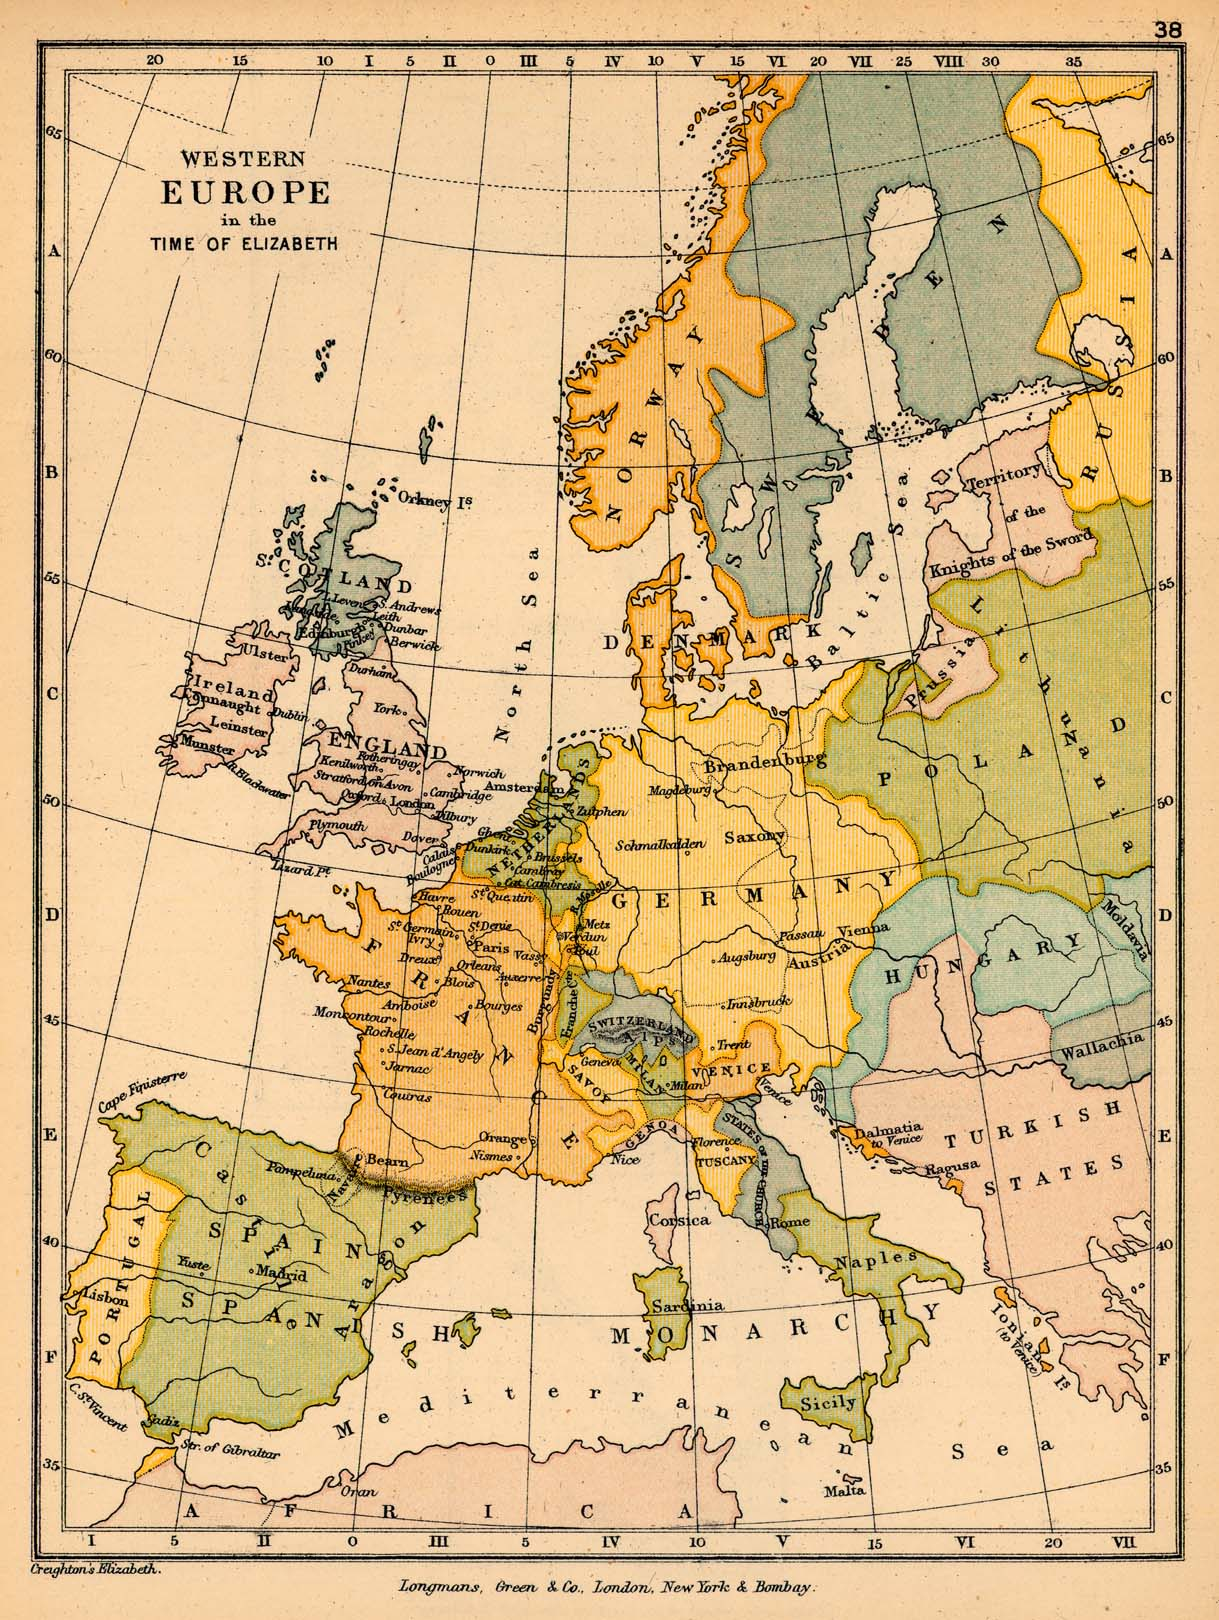 Public schools historical atlas by c colbeck perry castaeda map map 37 western europe in the time of elizabeth gumiabroncs Gallery